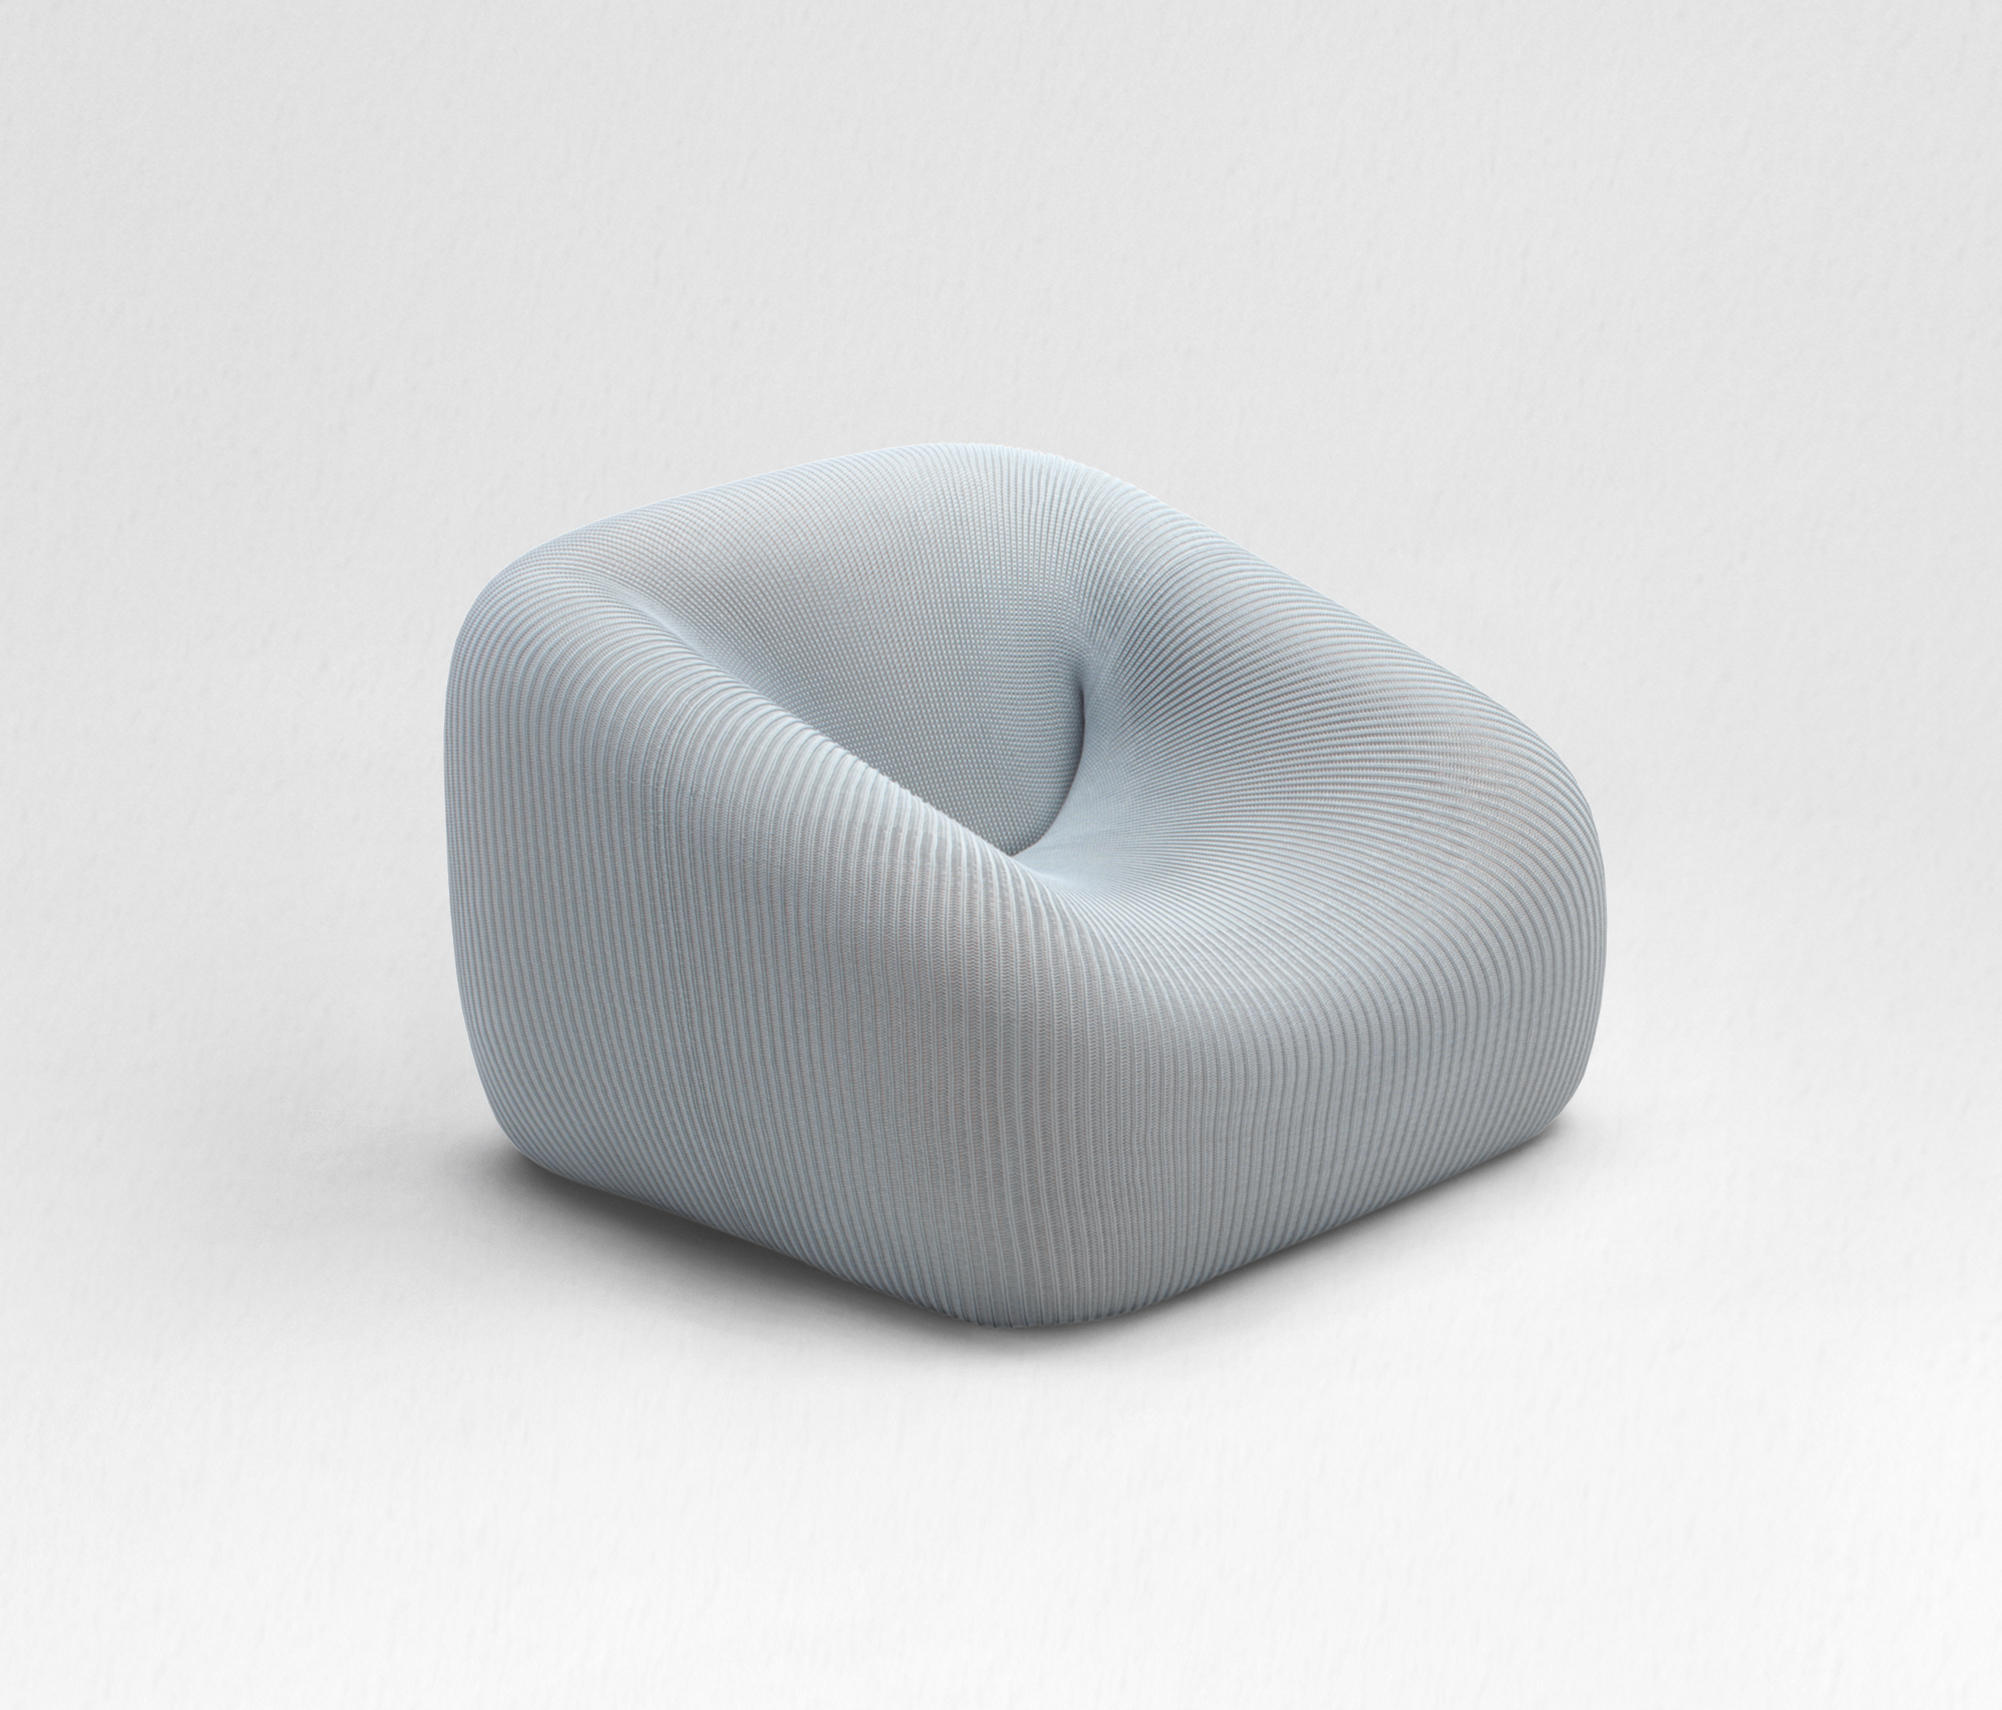 SMILE - Armchairs from Paola Lenti | Architonic